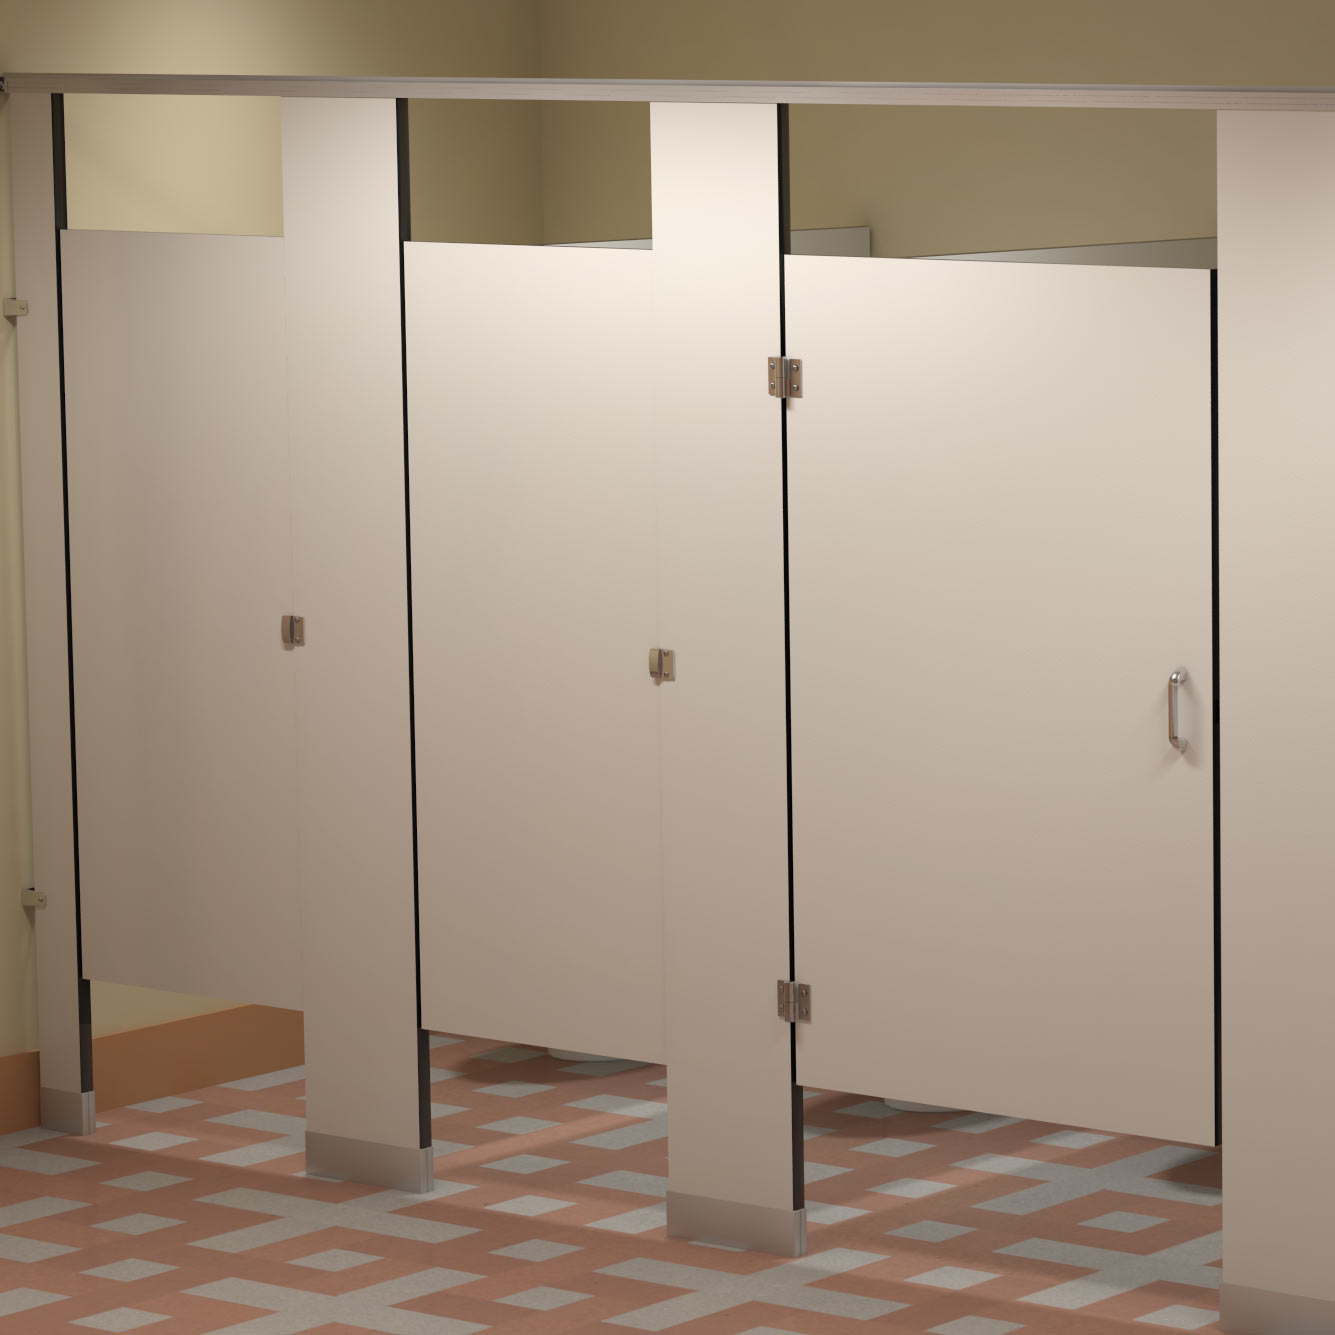 Bradley Bathroom Accessories Solid Phenolic Core Partitions  Bradley Corporation